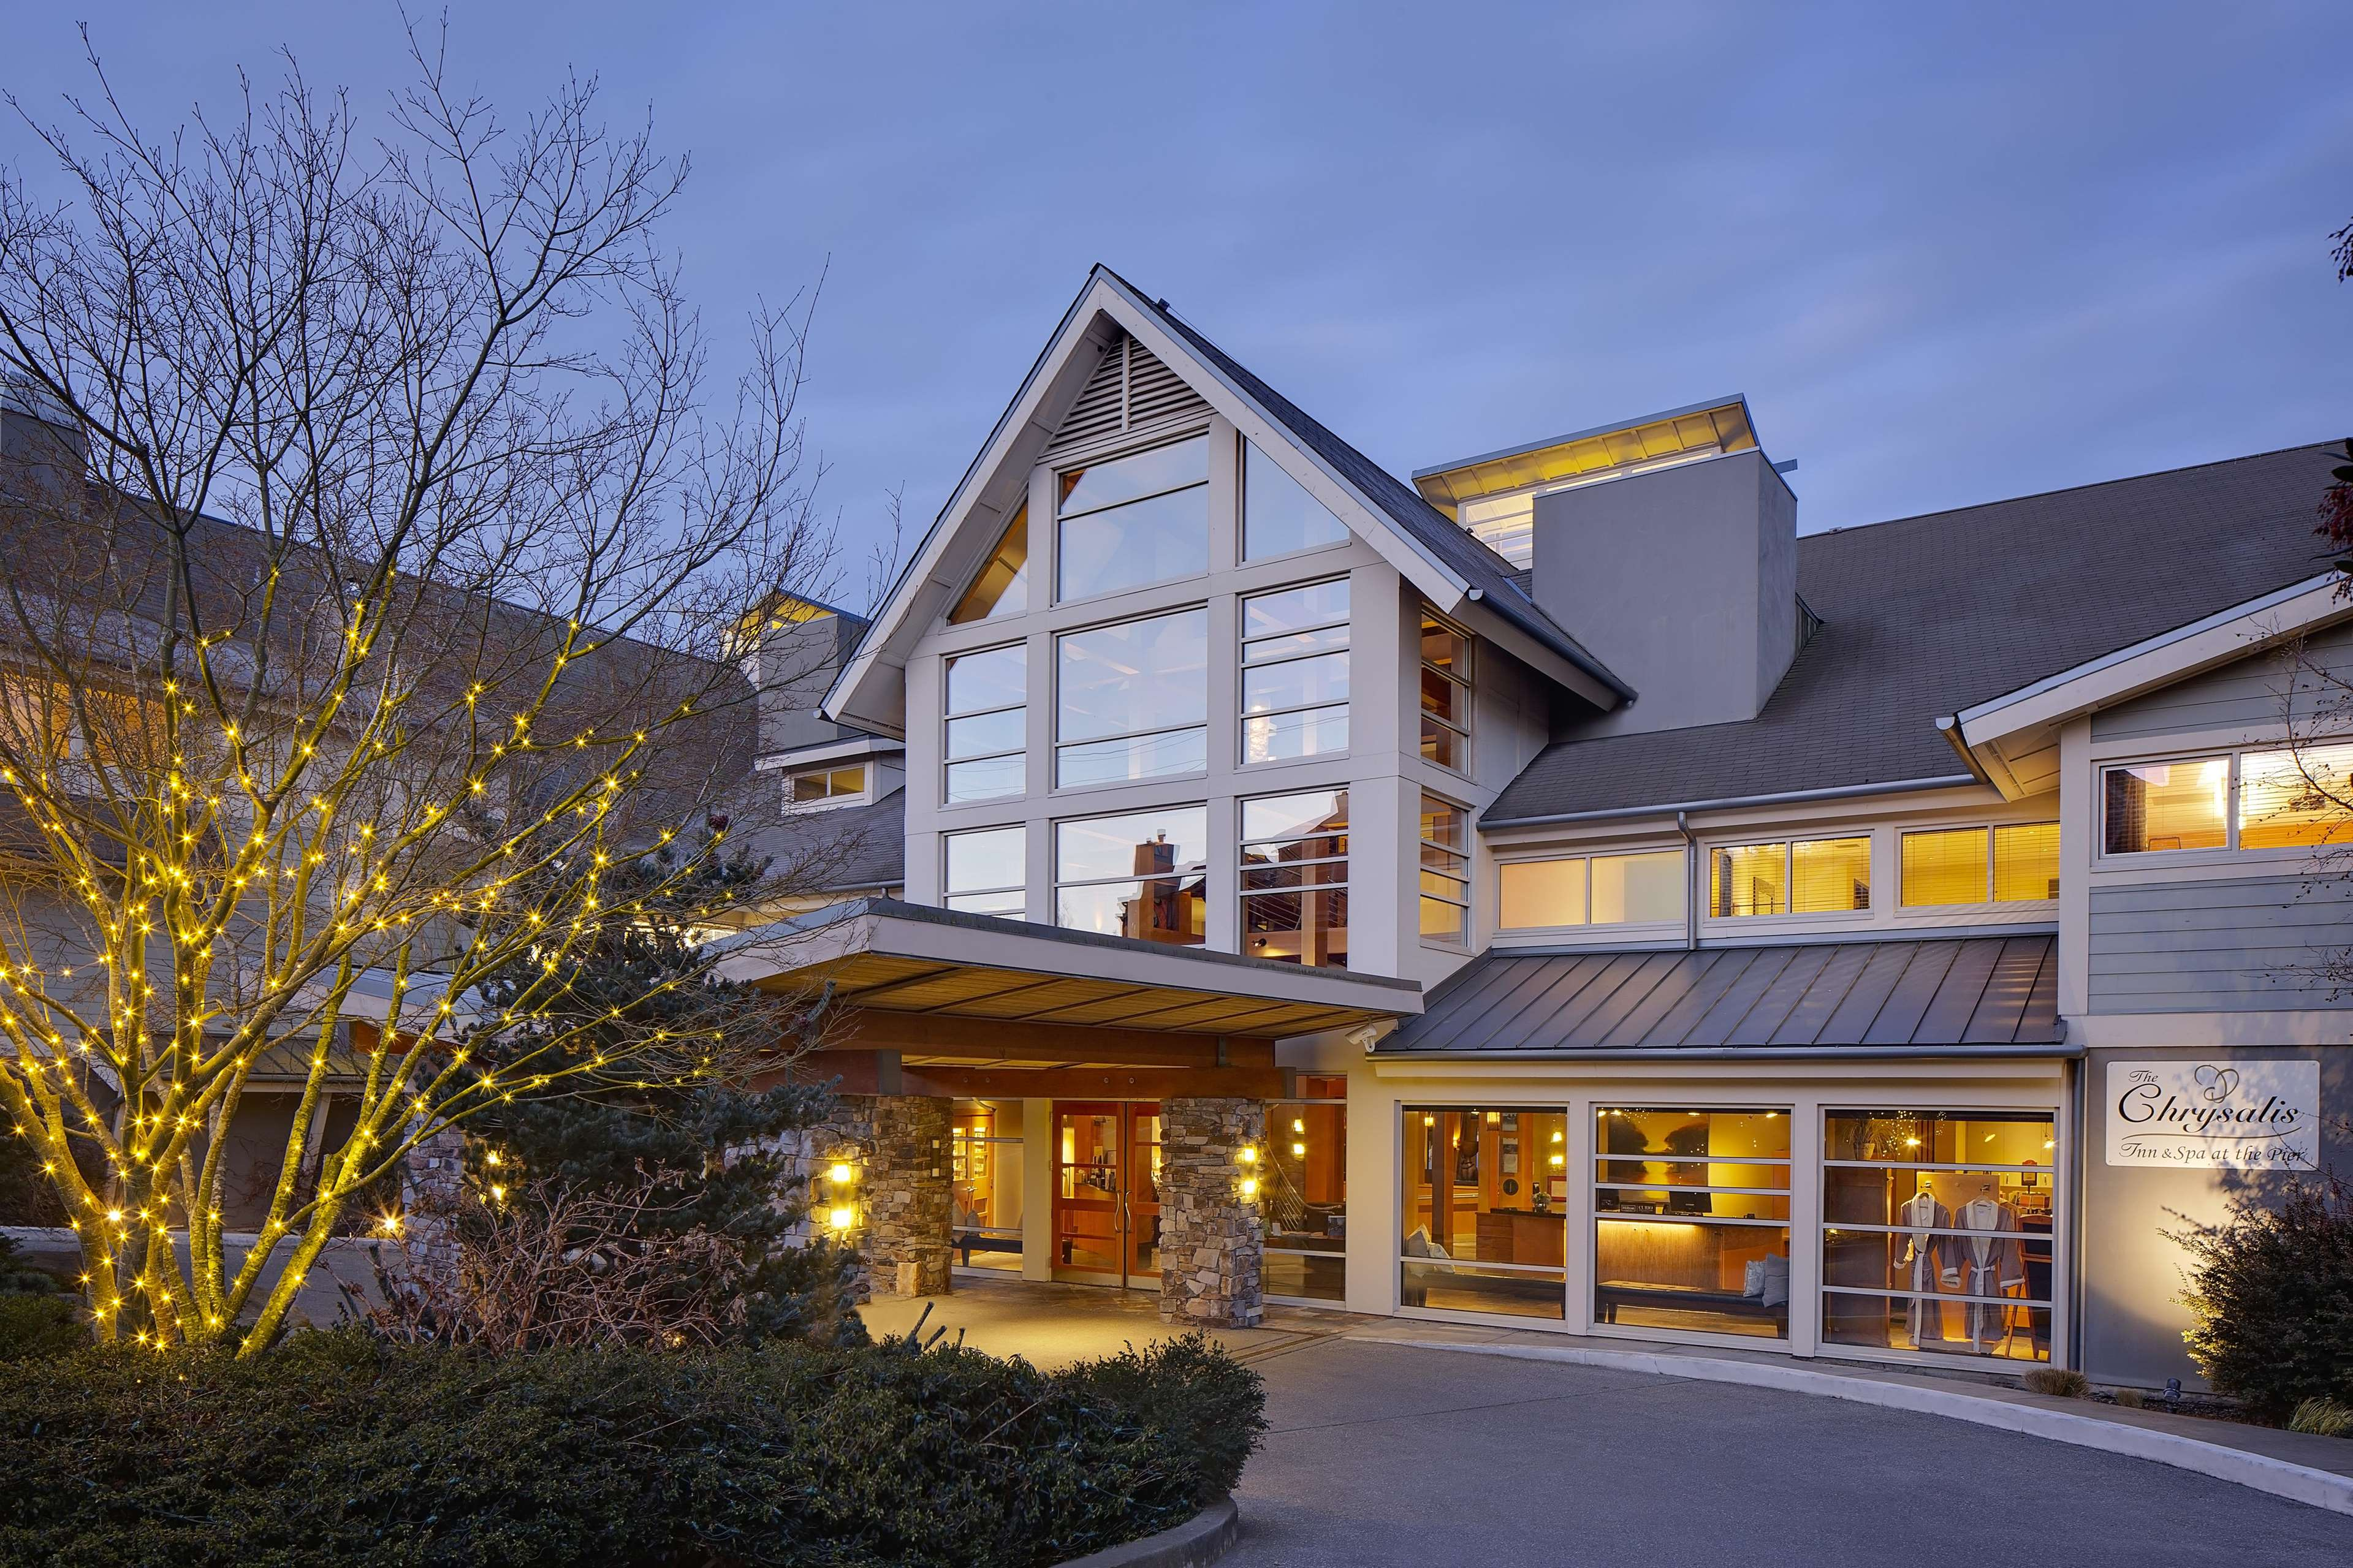 The Chrysalis Inn & Spa Bellingham, Curio Collection by Hilton image 1